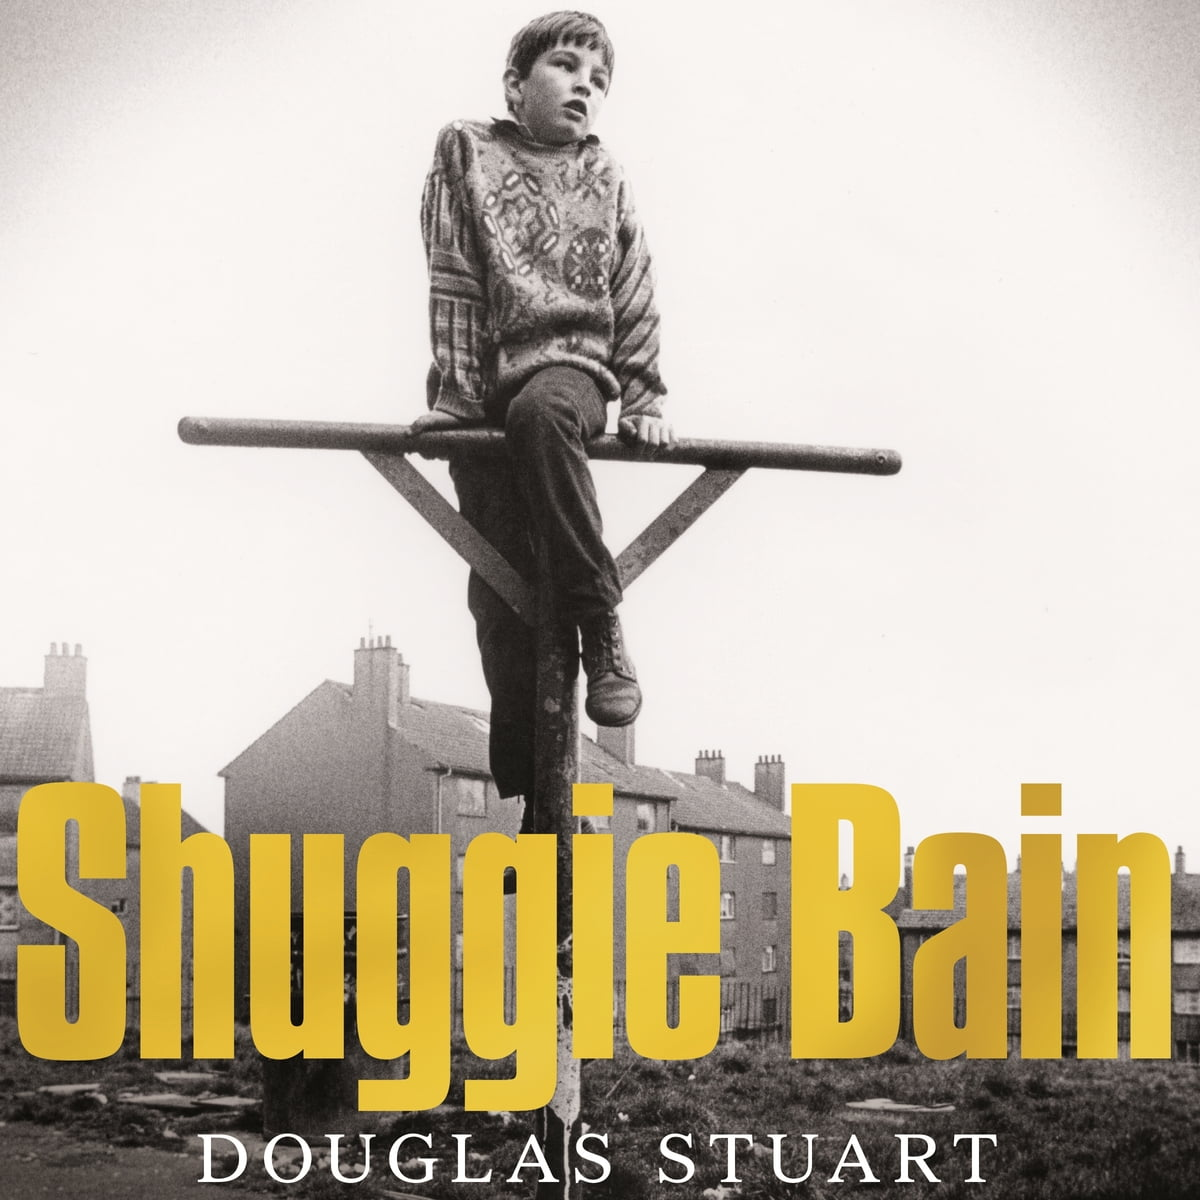 Shuggie Bain Audiobook by Douglas Stuart - 9781529019315 | Rakuten Kobo New  Zealand